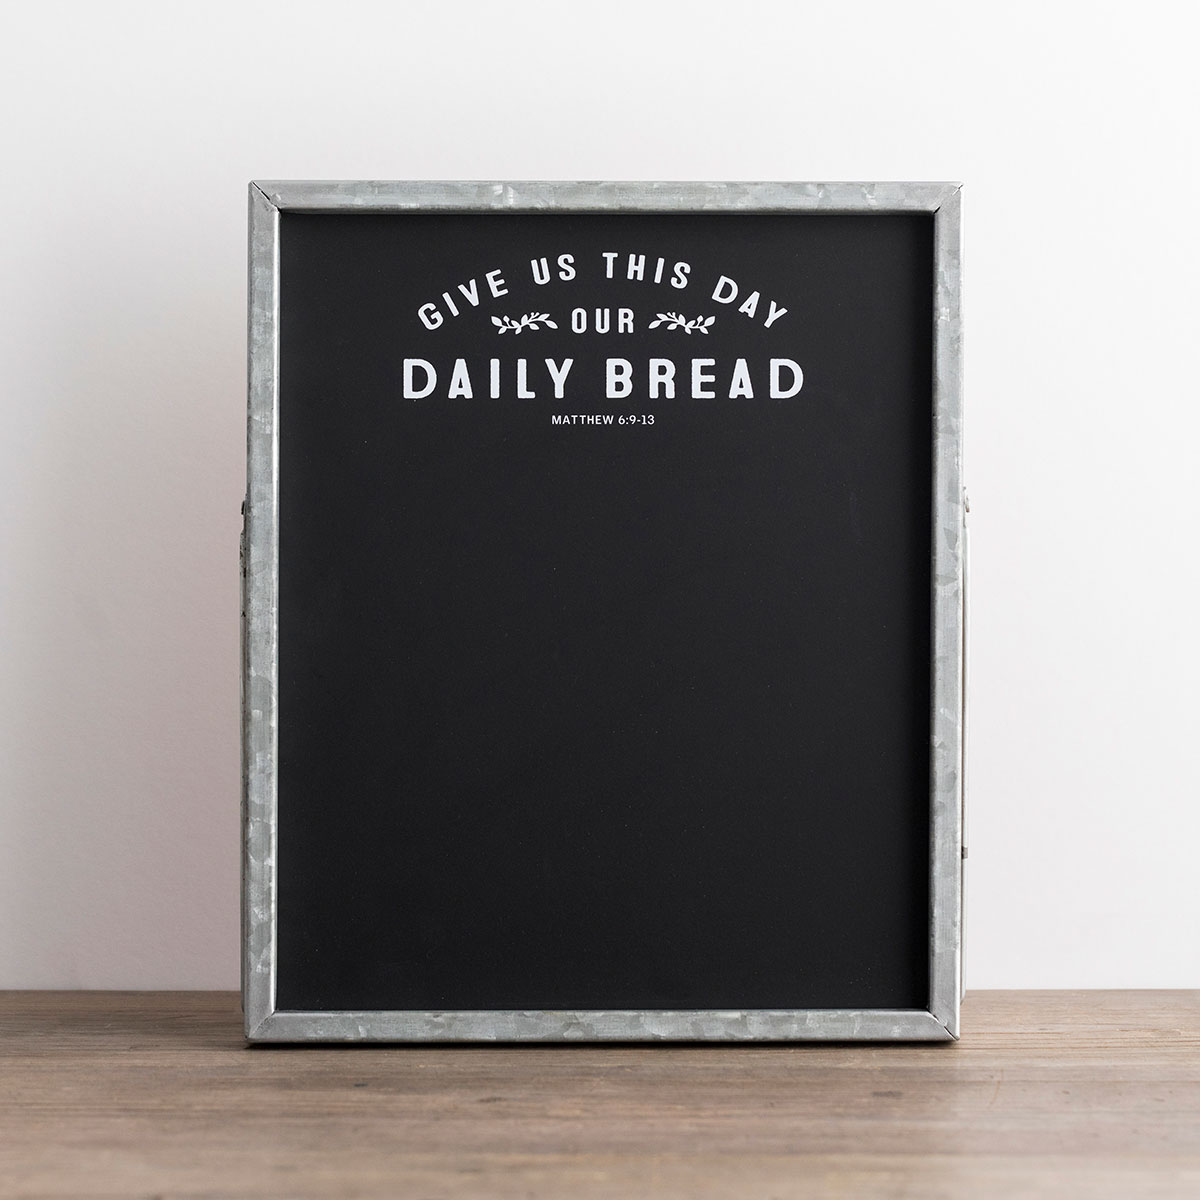 Our Daily Bread - Memo Chalkboard